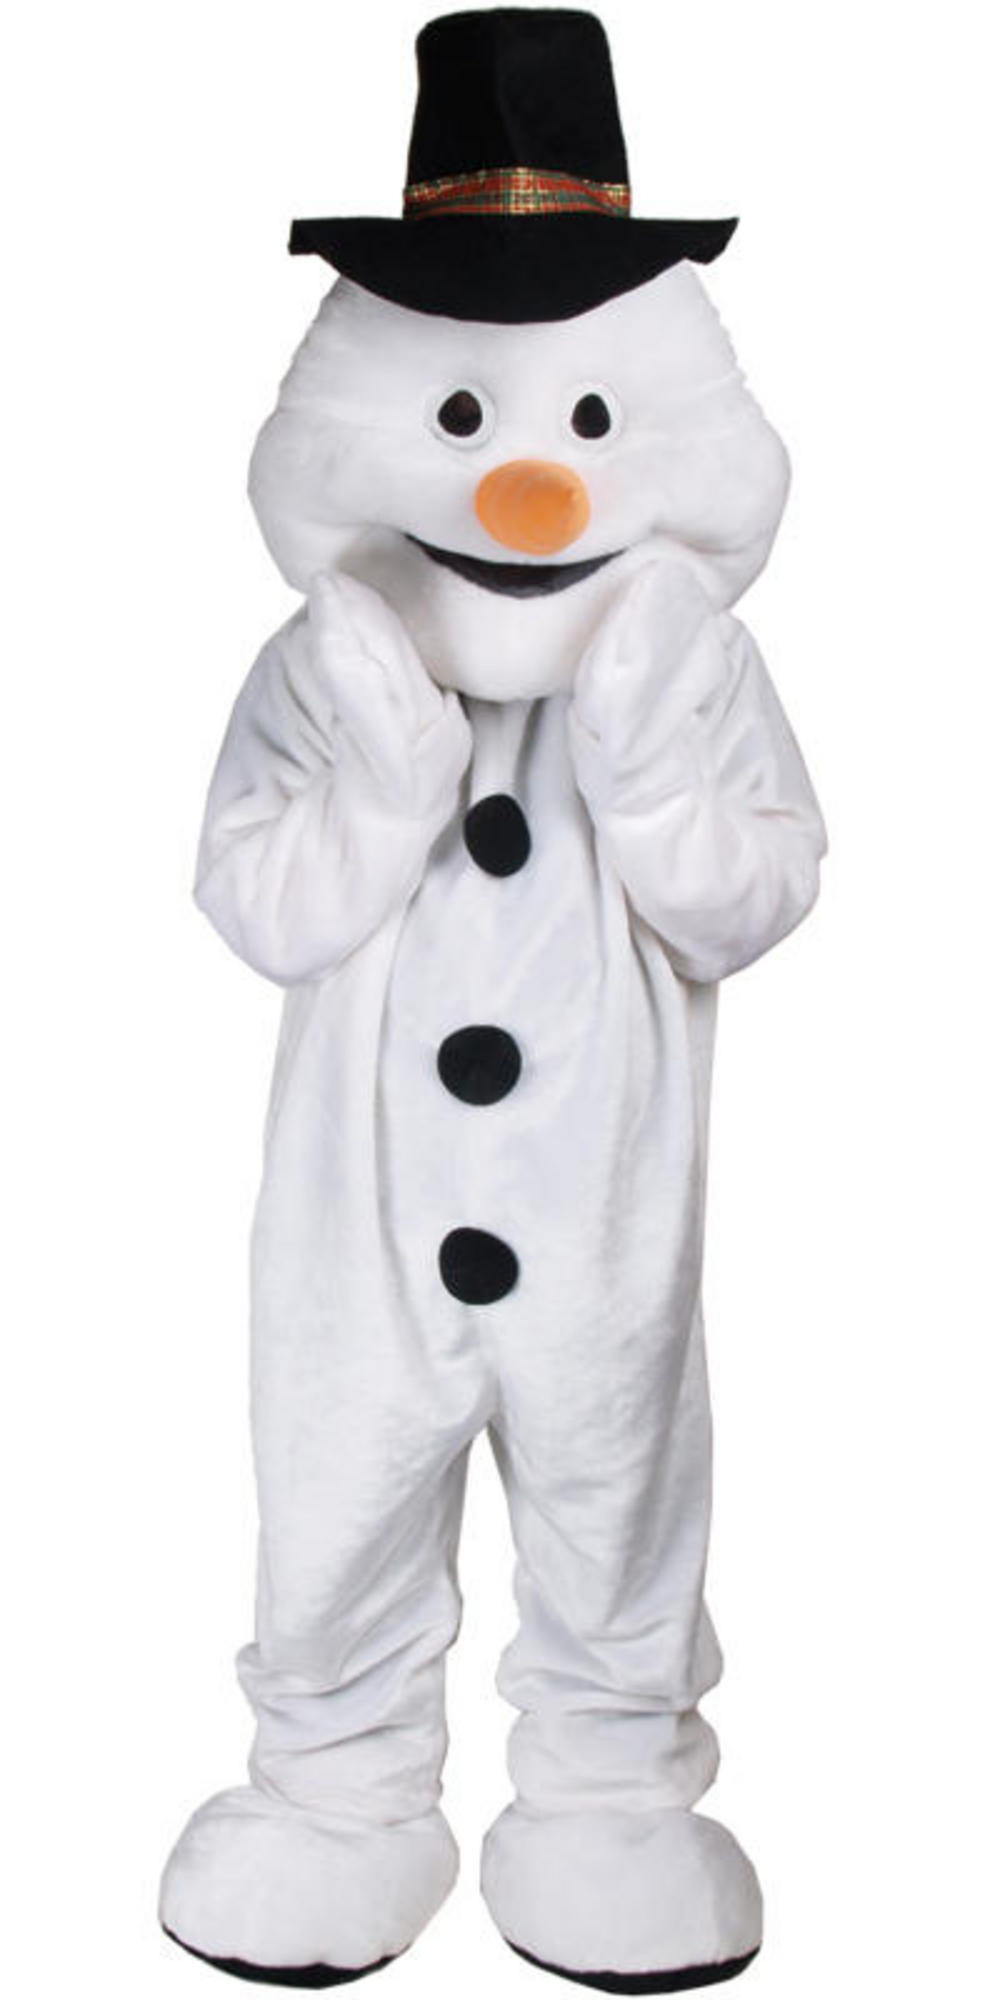 Snowman Mascot Fancy Dress Costume